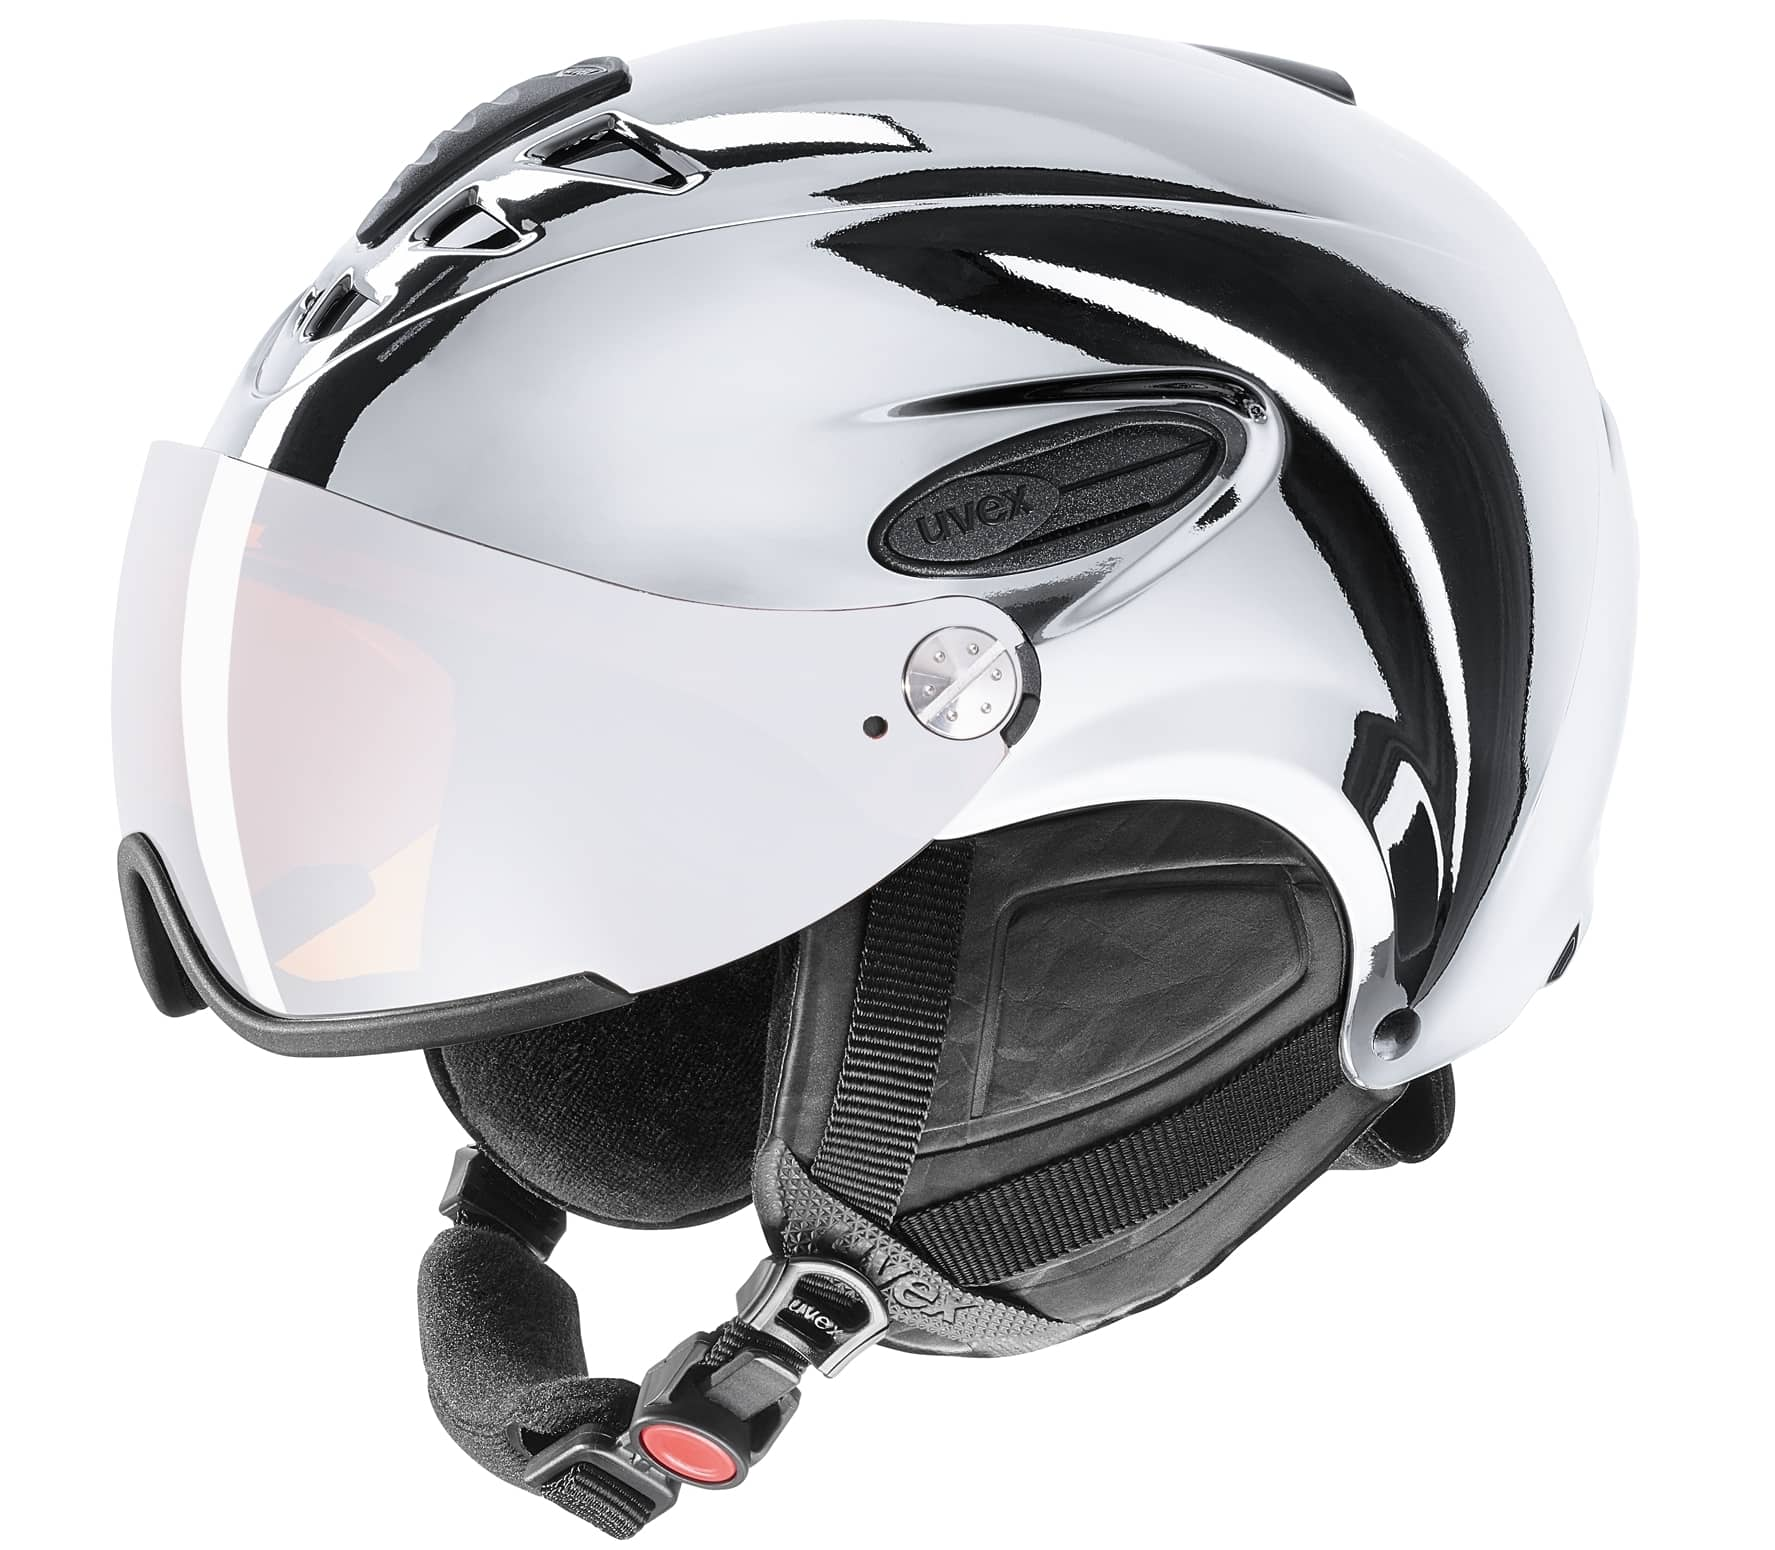 Uvex - Hlmt 300 chrome LTD Skihelm (silber) - 6...